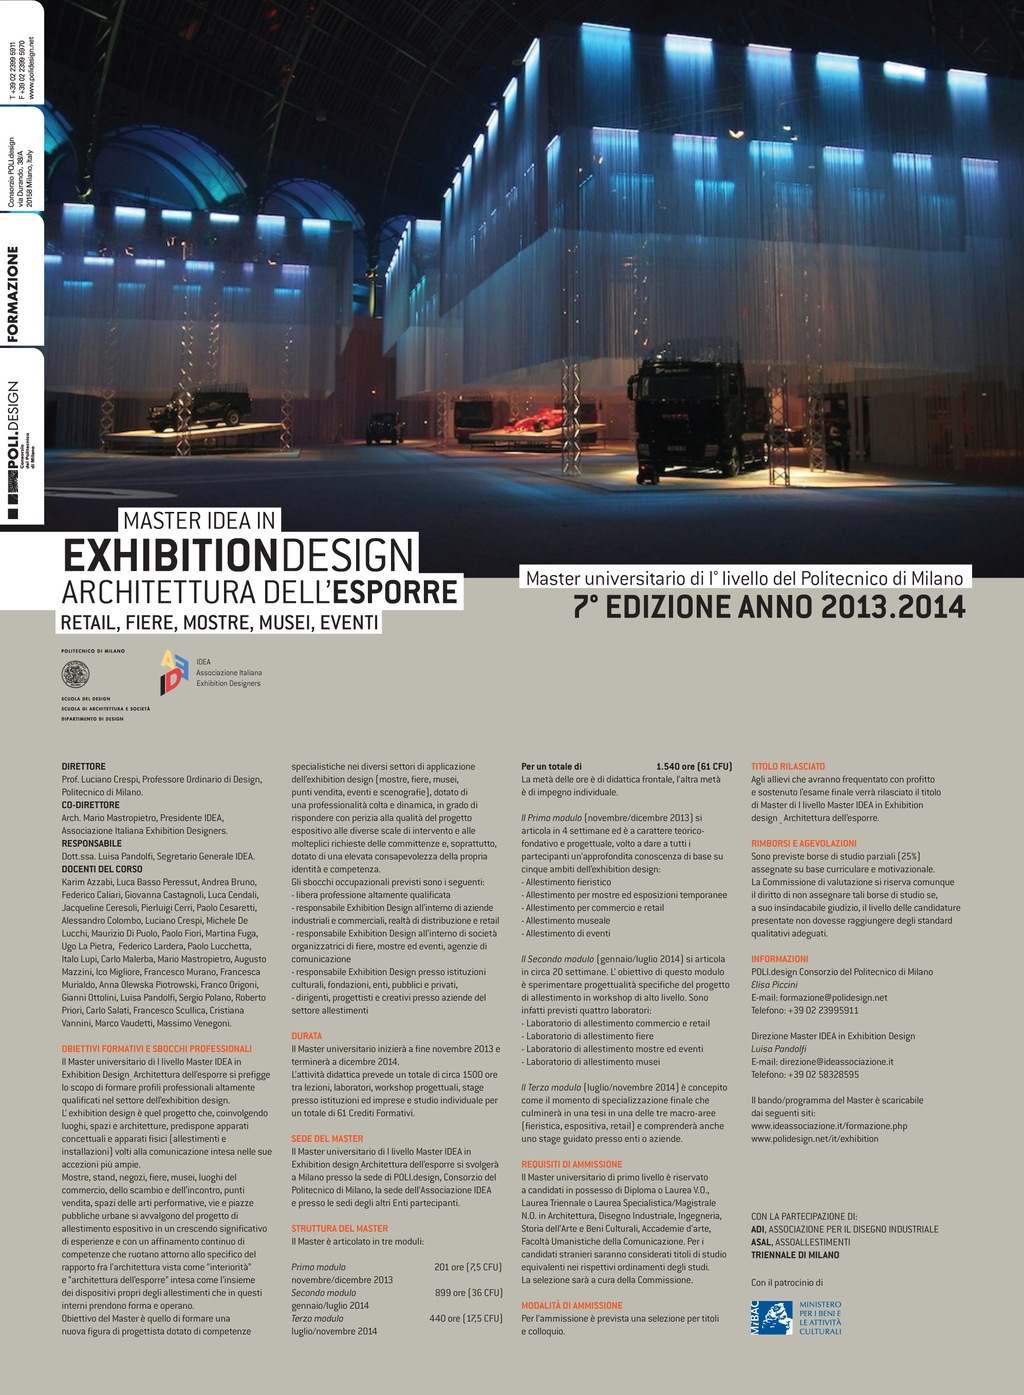 MASTER IDEA IN EXHIBITION DESIGN 13/14